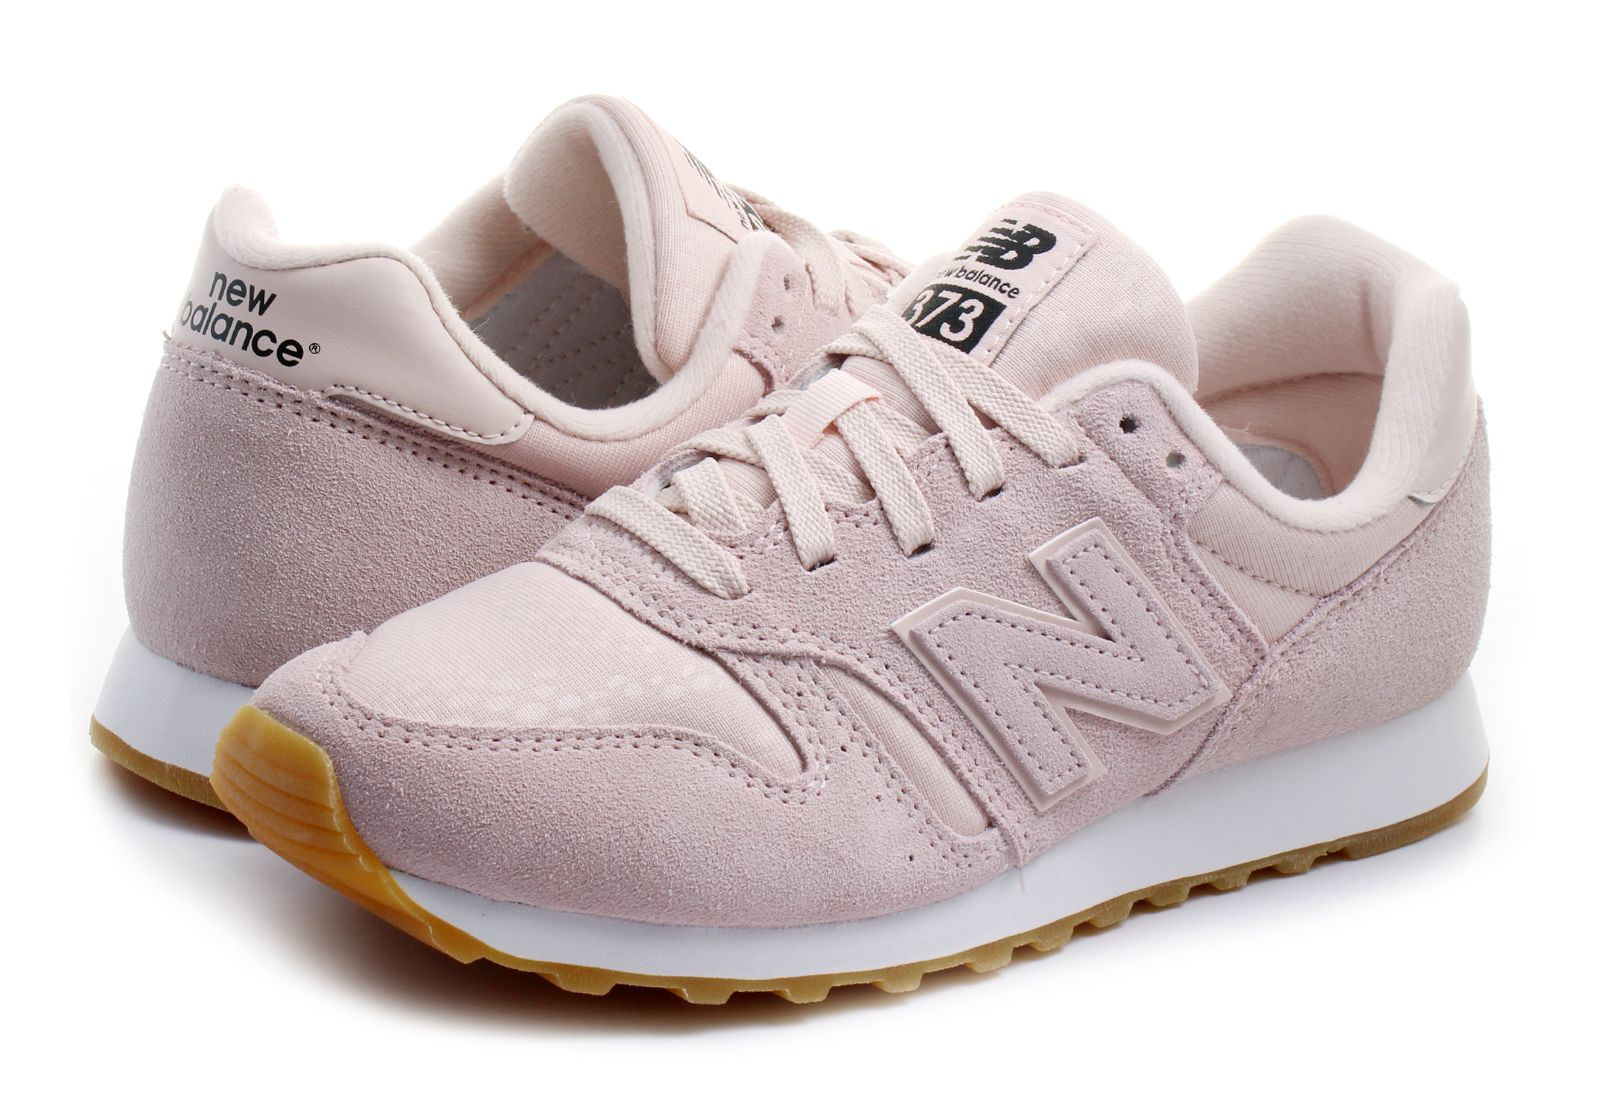 New Balance Size Chart Kid Shoes